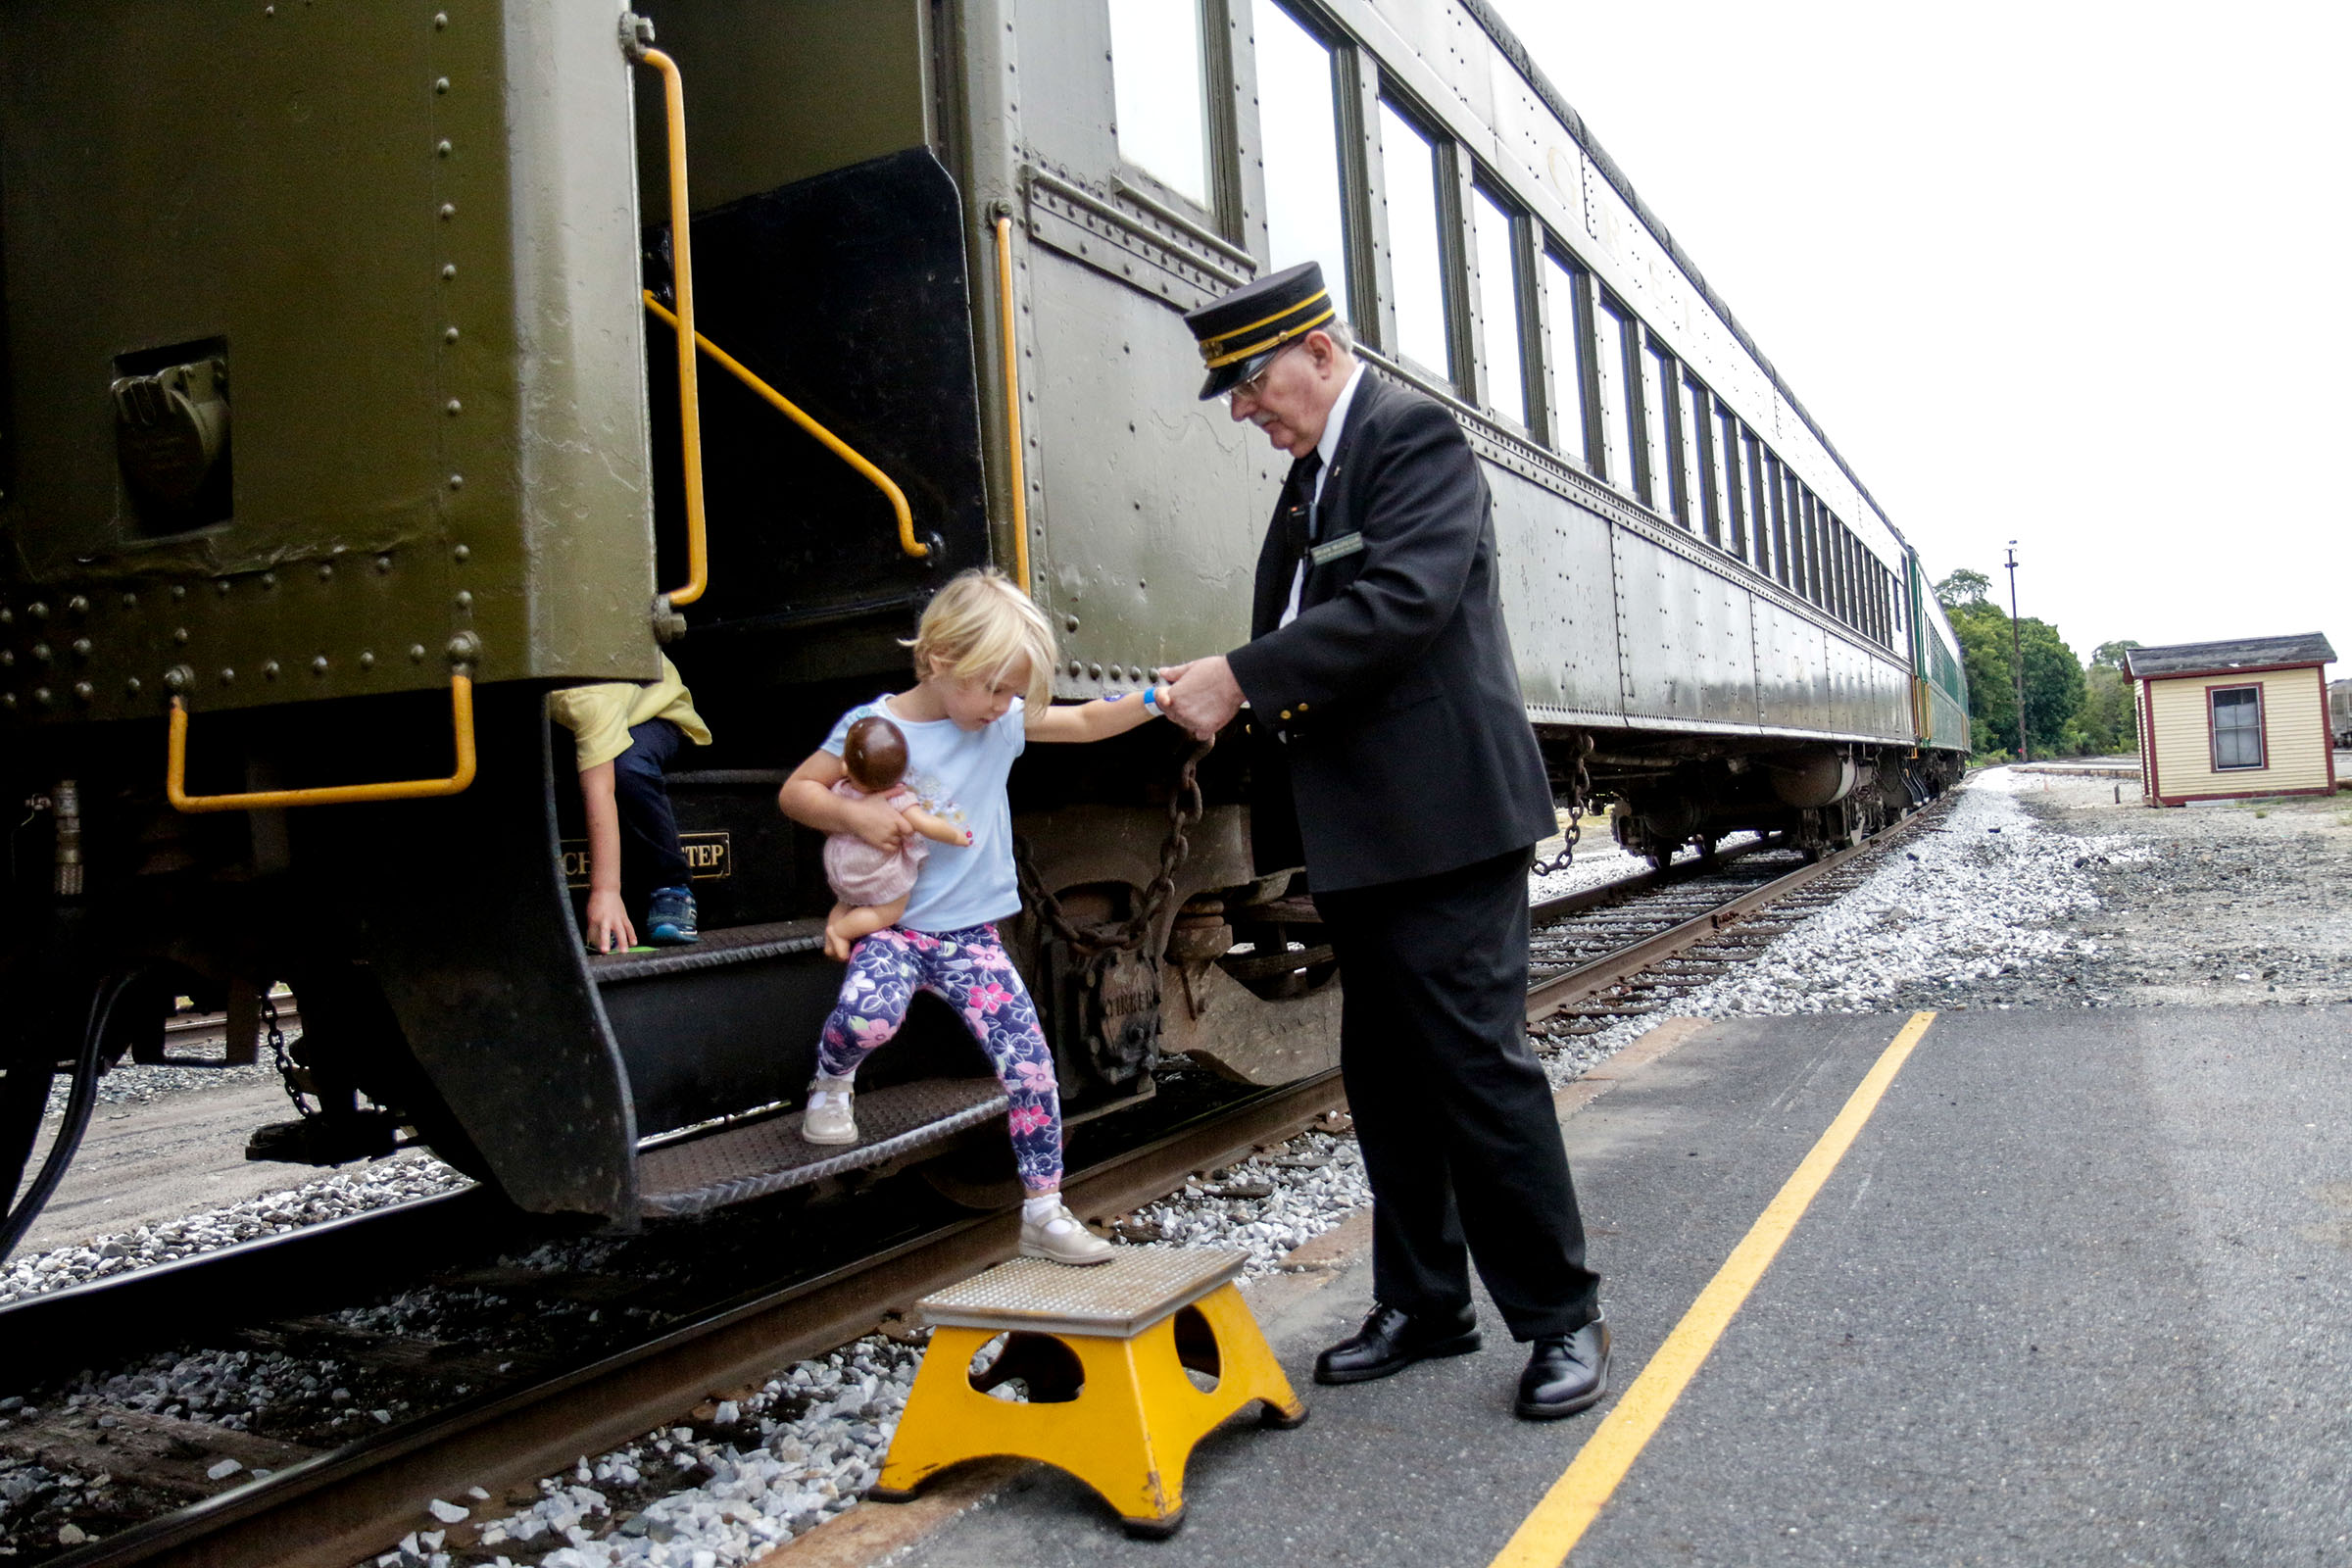 Brian McGregor, the passenger representative of Green Mountain Railroad, helps Nicole Piasecki, 3, of Hanover, N.H., off the train at the end of her 40 minute train ride at Glory Days of the Railroad in White River Junction, Vt., on Saturday, Sept. 8, 2018.